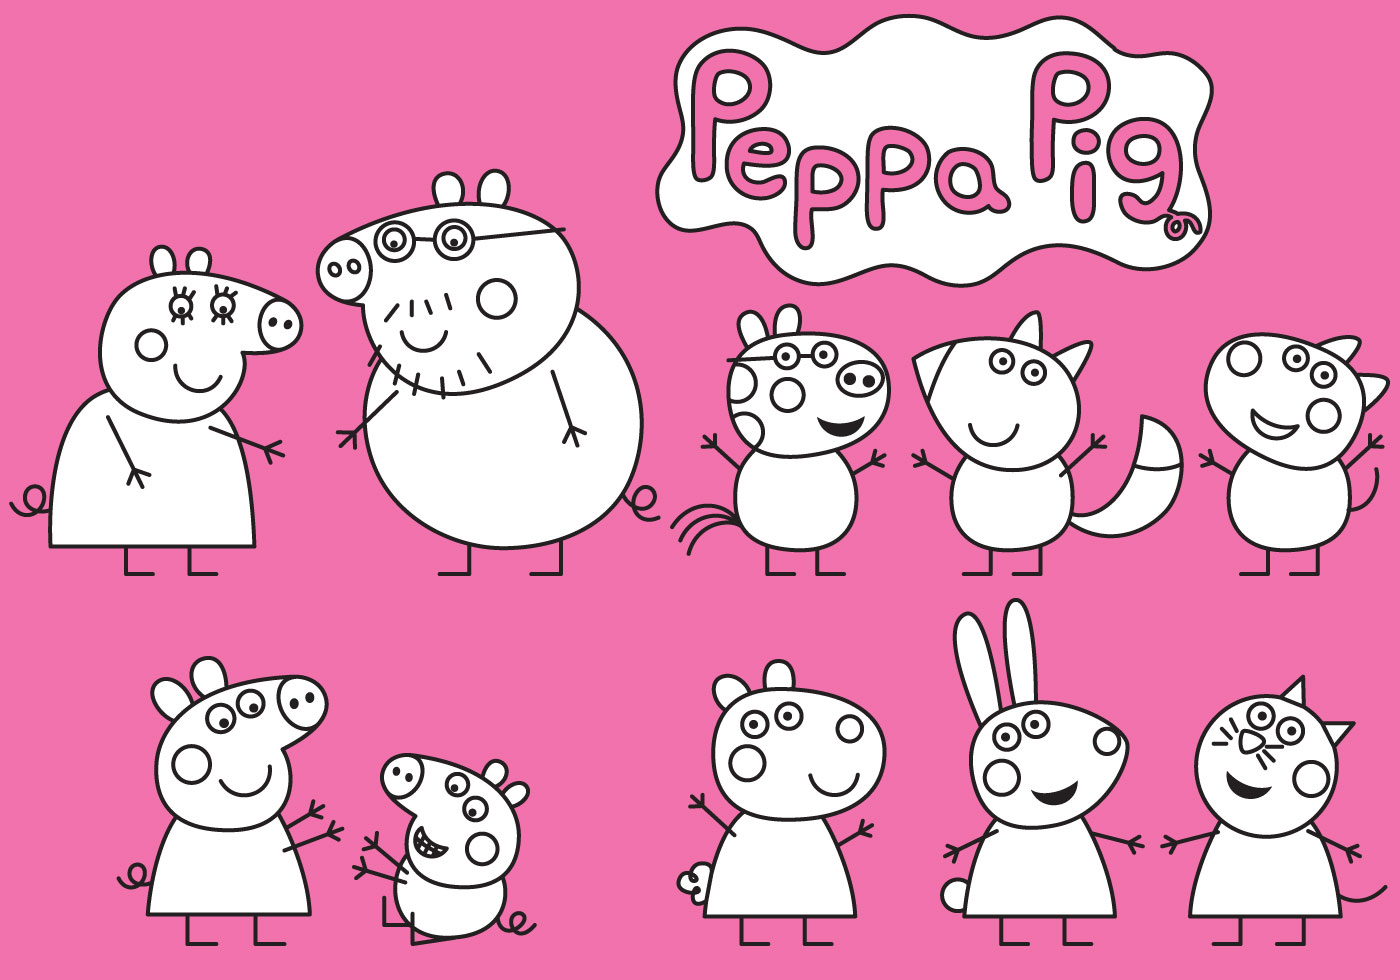 peppa pig coloring download free vector art stock